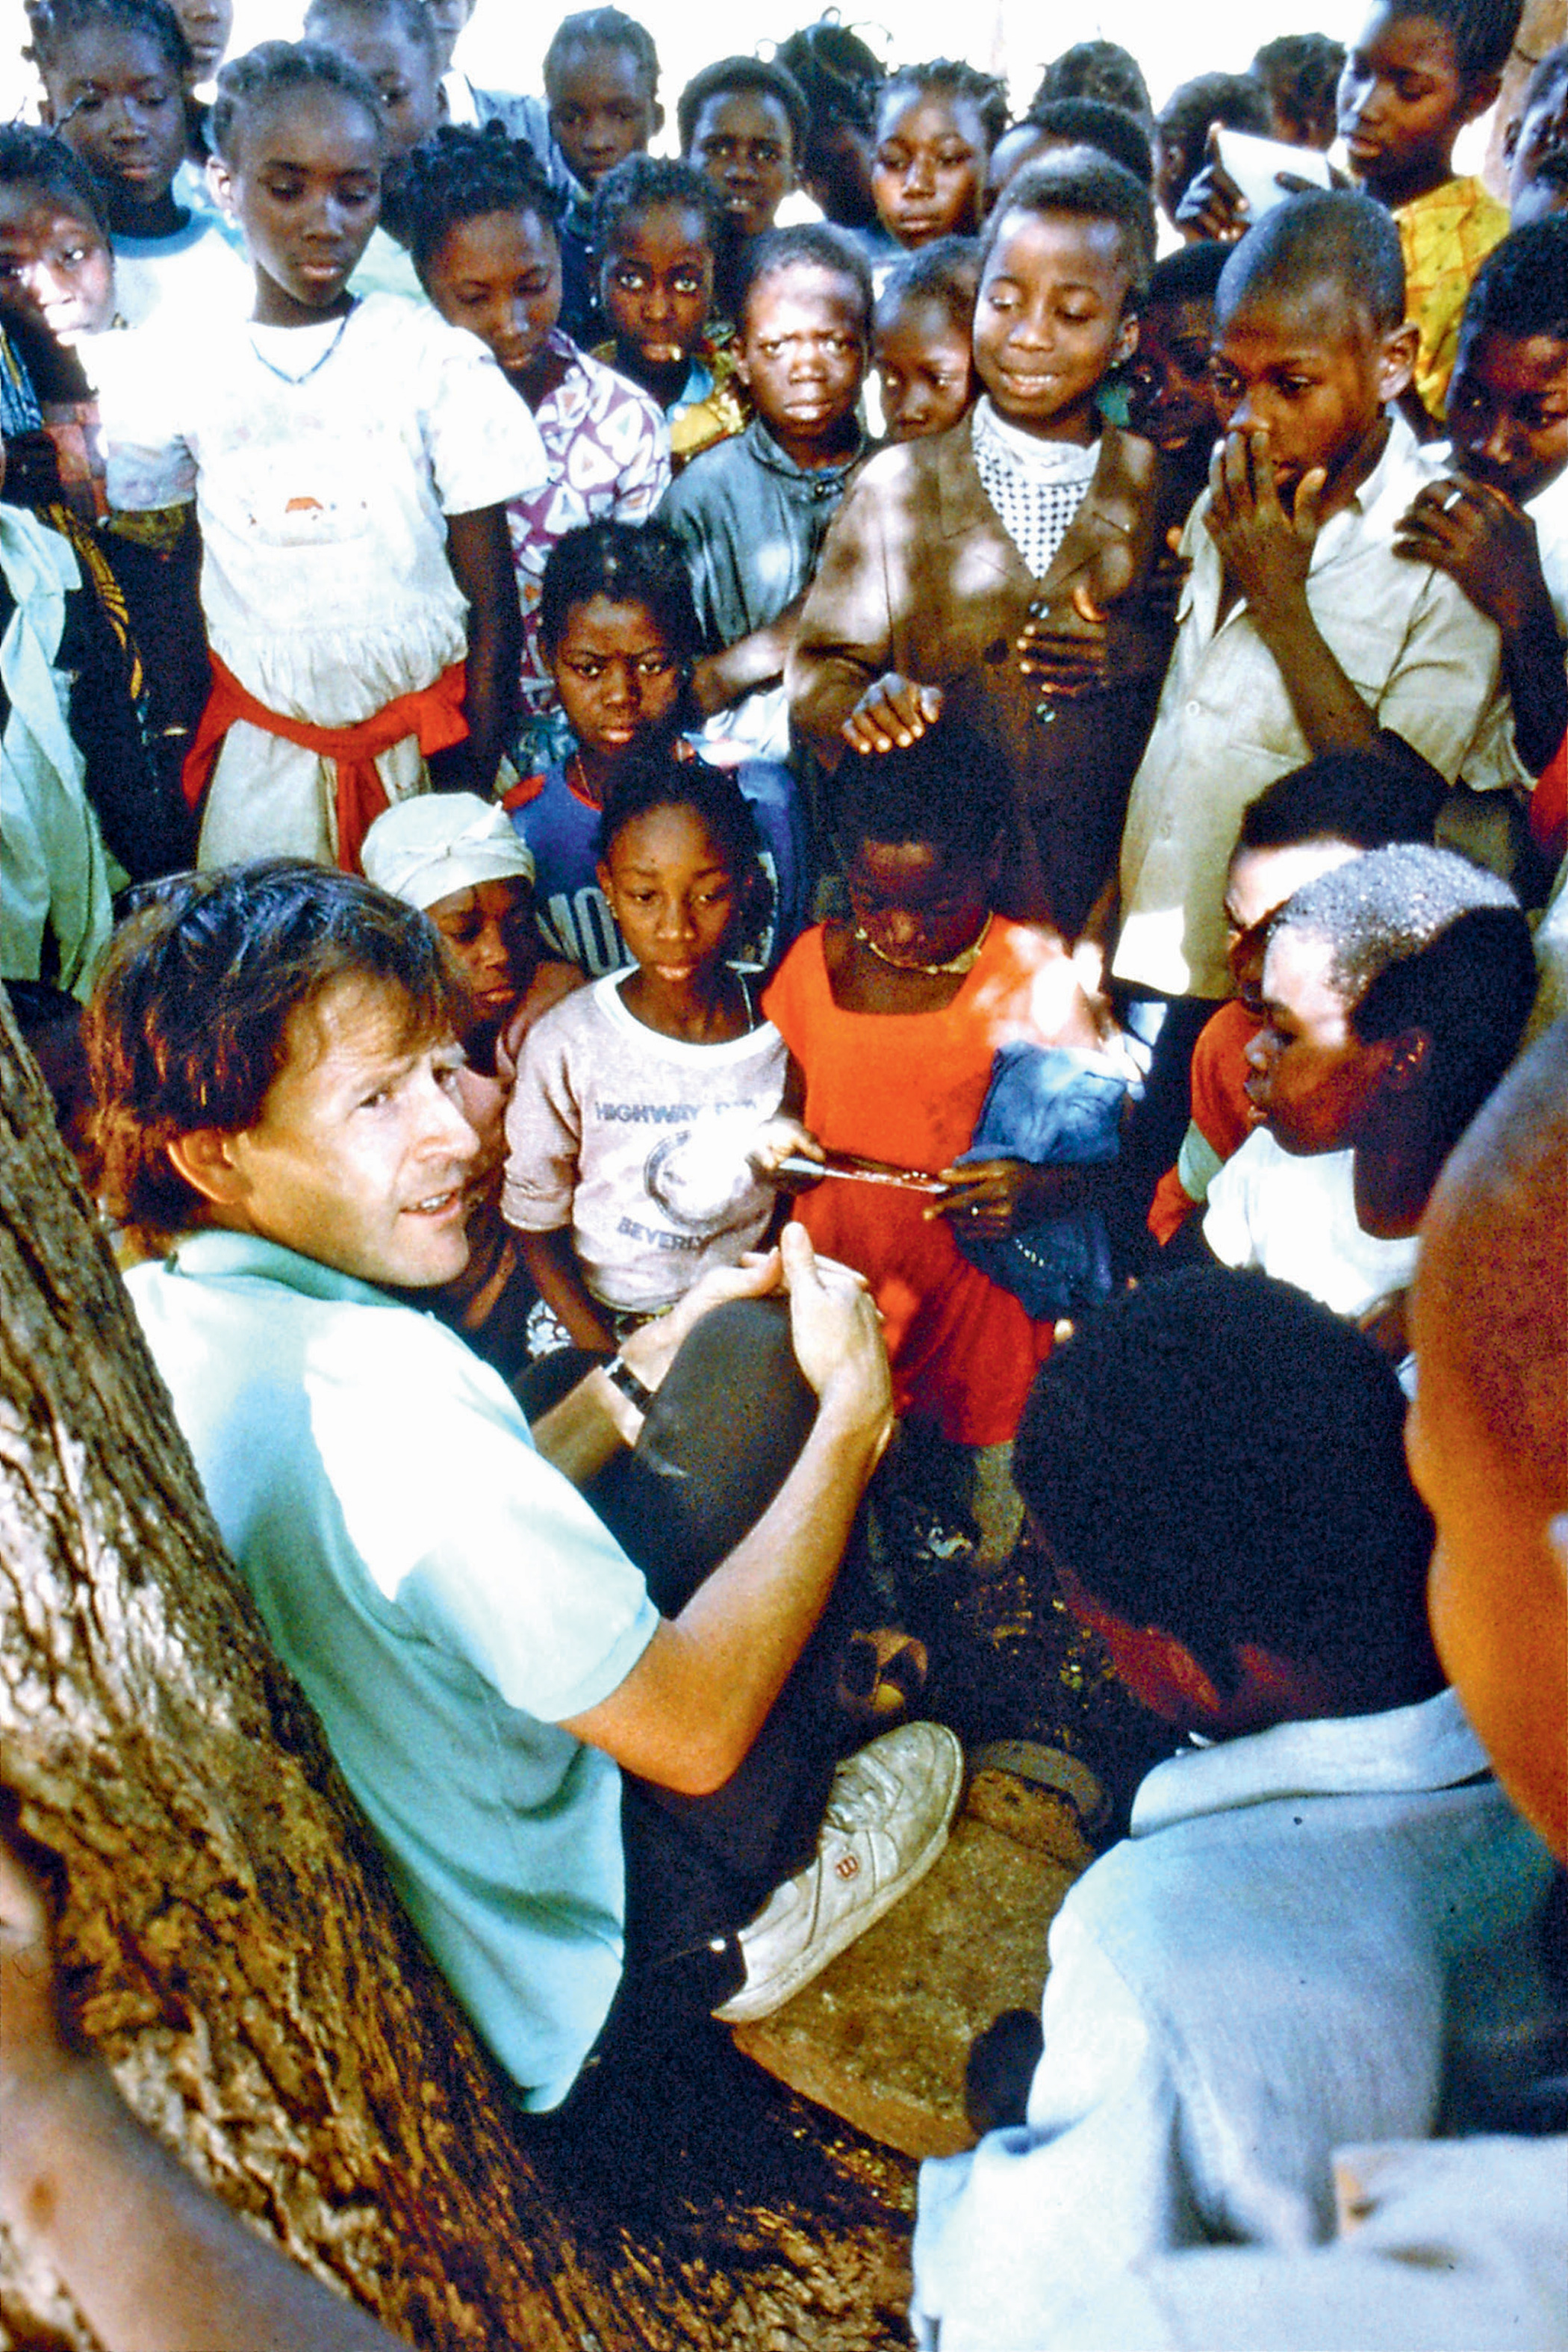 Lesson under a tree. Showing photographs and talking about the differences between Britain and Burkina Faso to a class of schoolchildren in 1995.